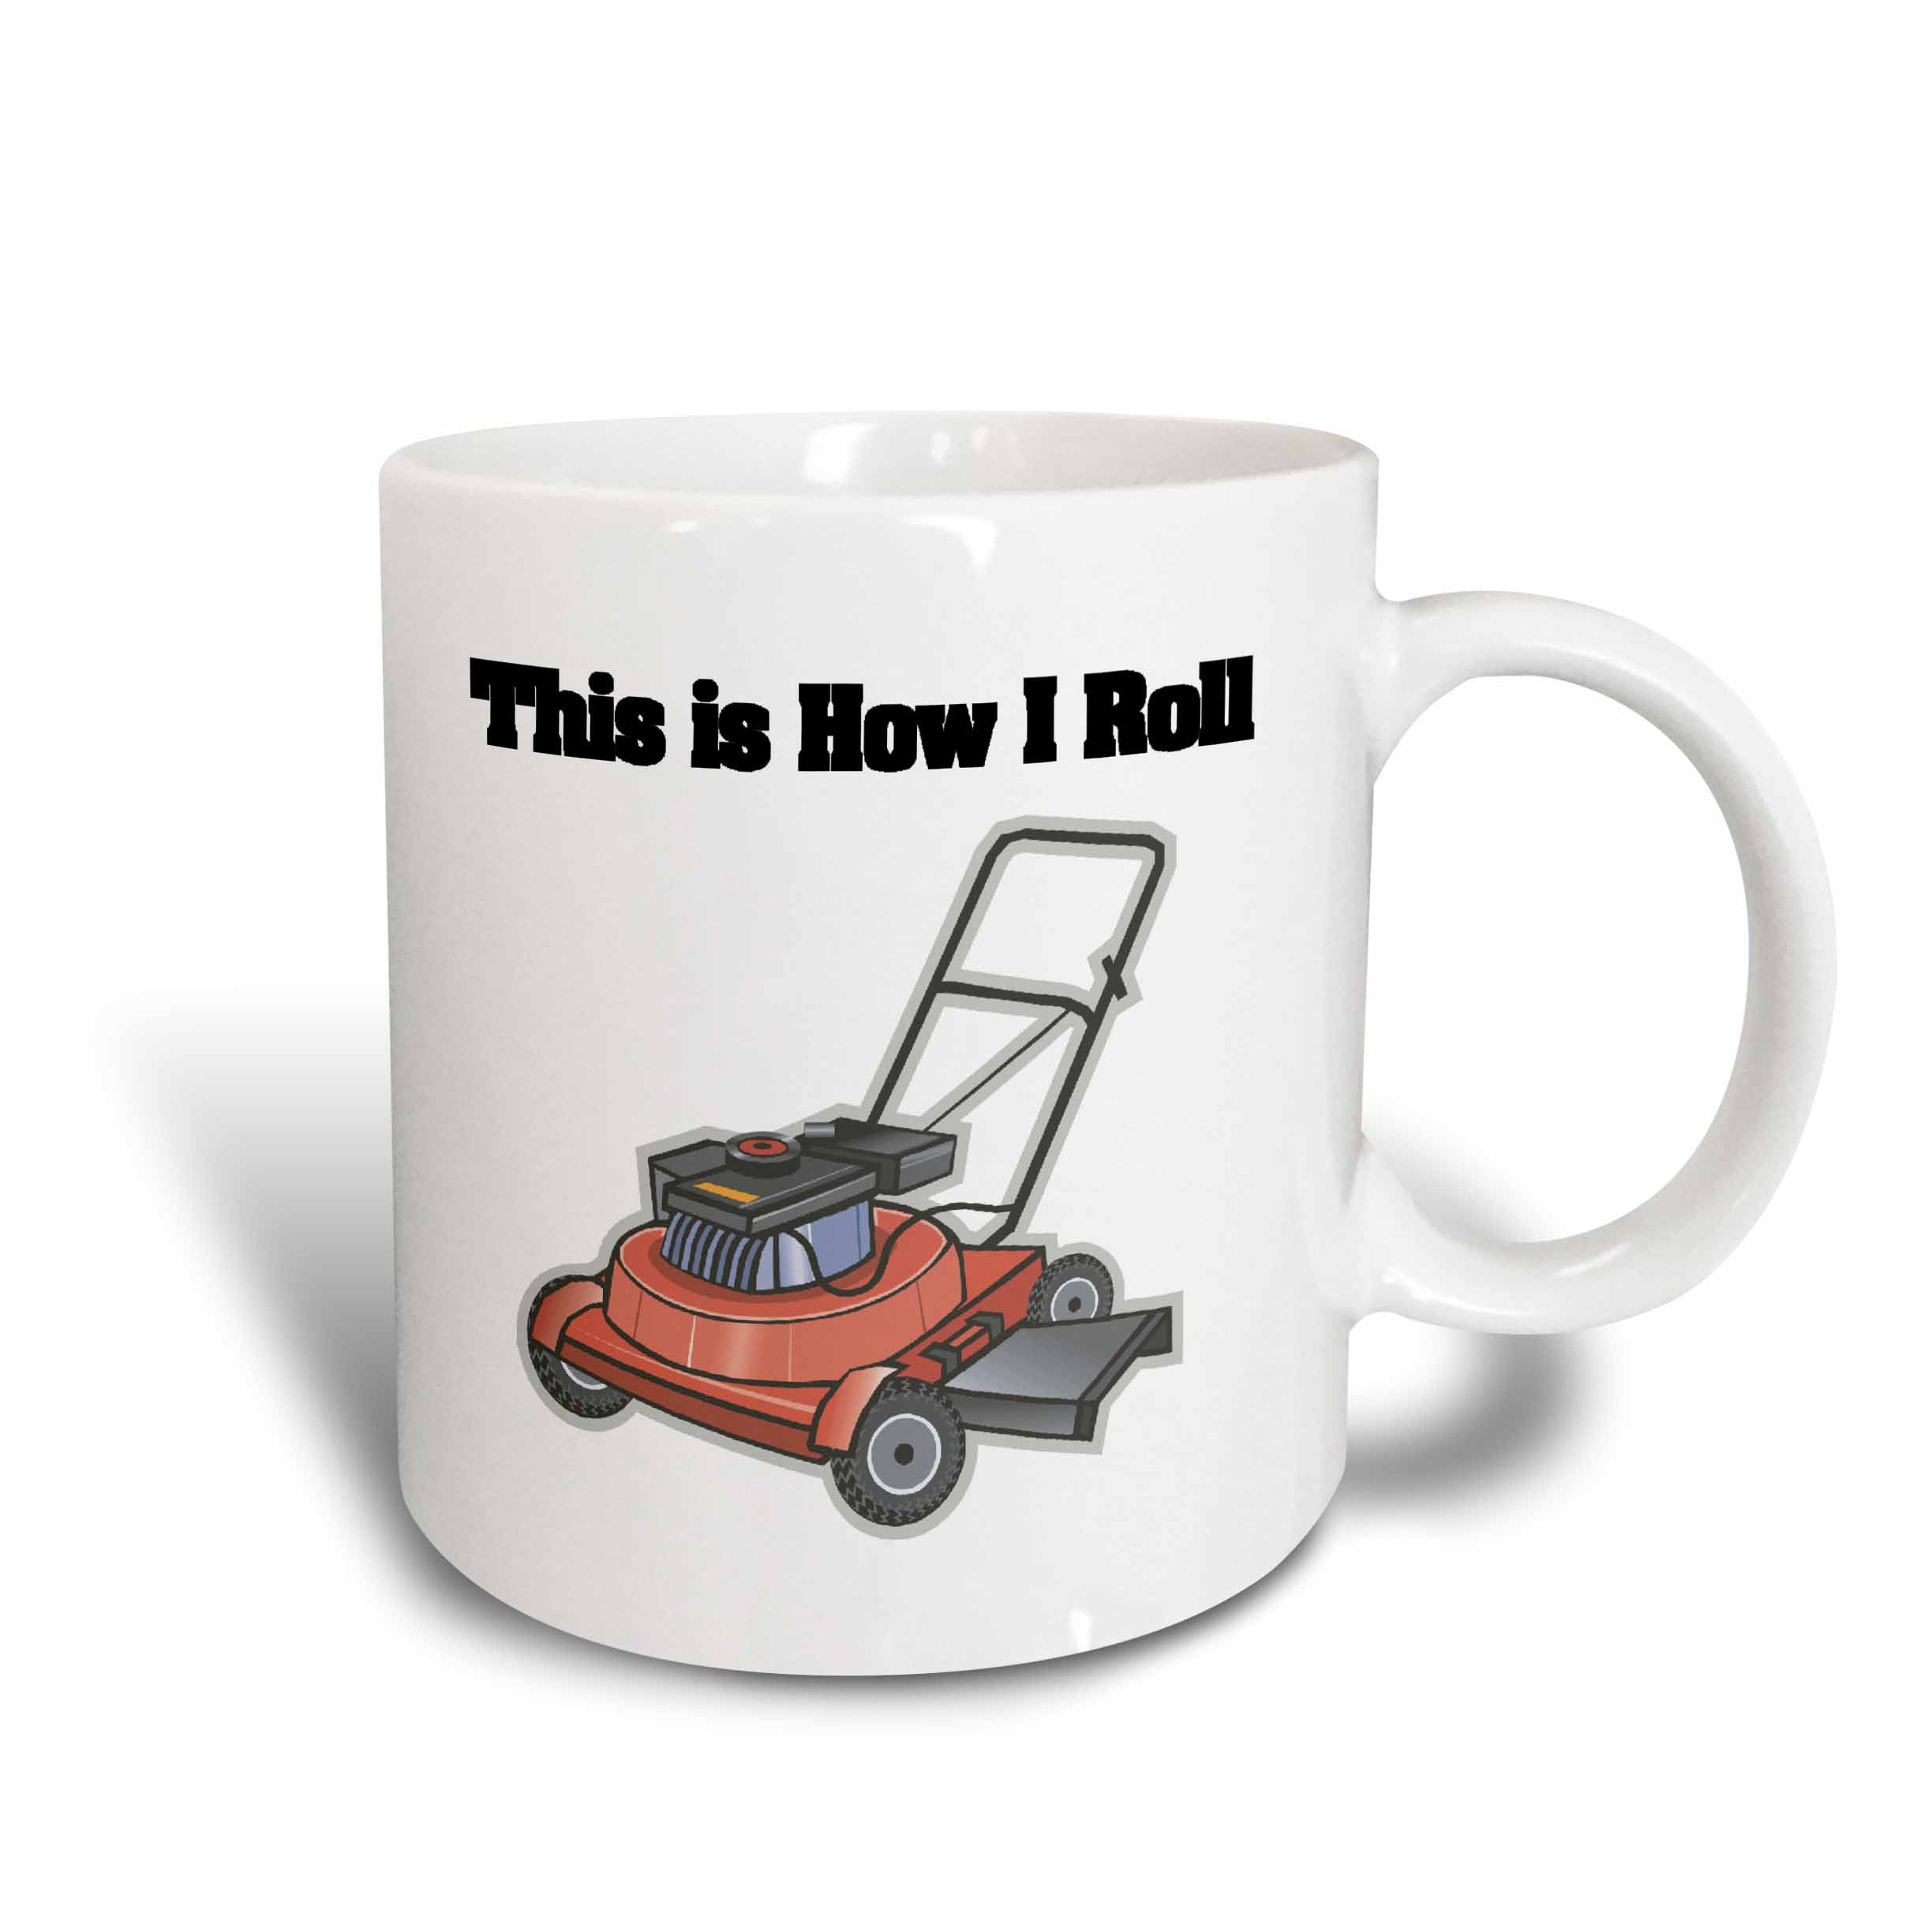 3dRose This Is How I Roll Lawn Mower, Ceramic Mug, 15-ounce